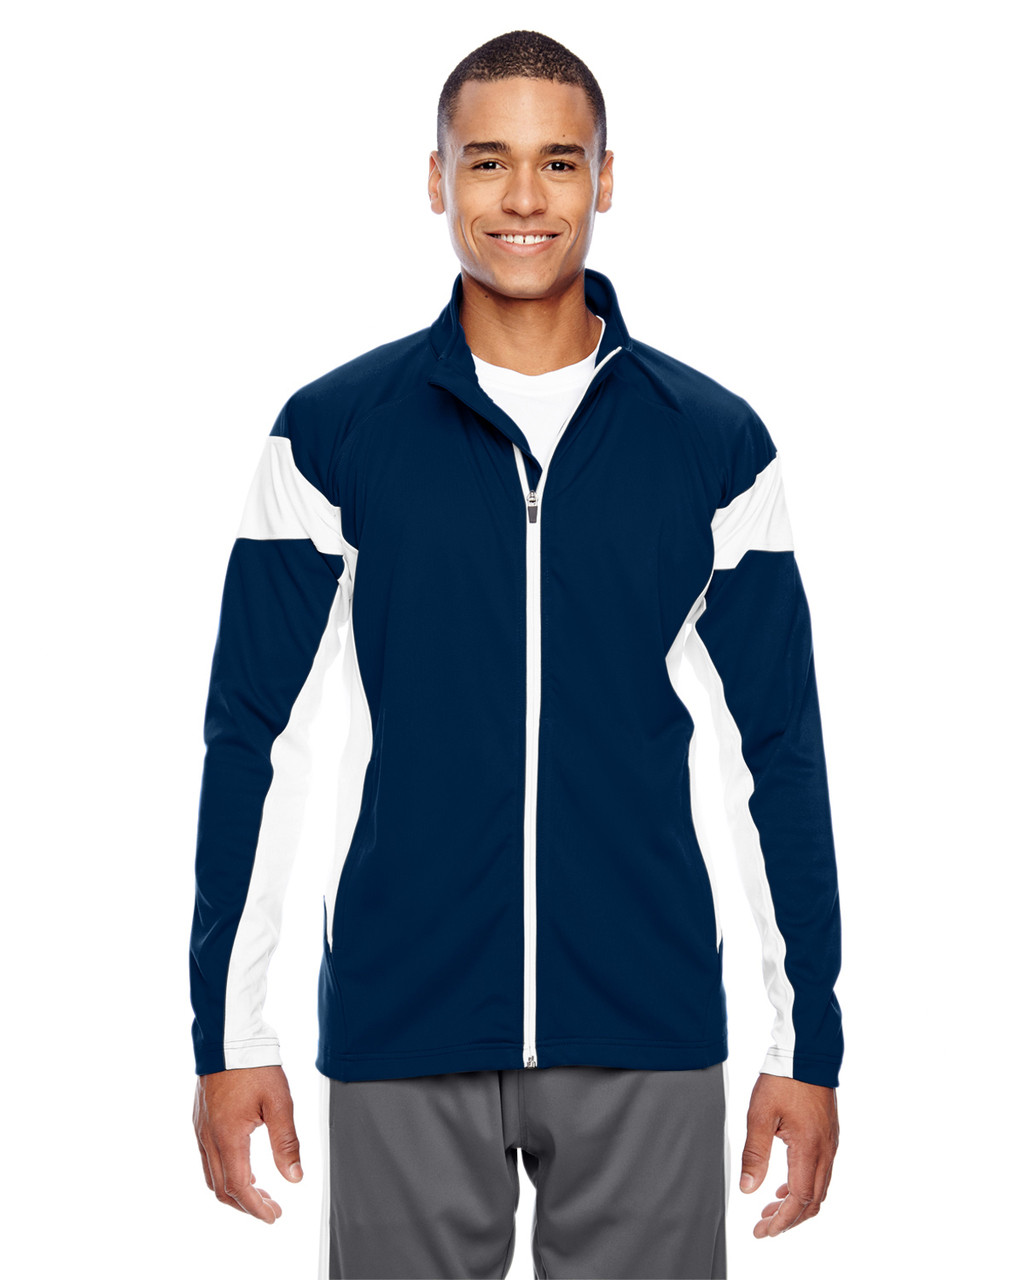 Dark Navy/White - TT34 Team 365 Men's Performance Full-Zip Jacket | Blankclothing.ca